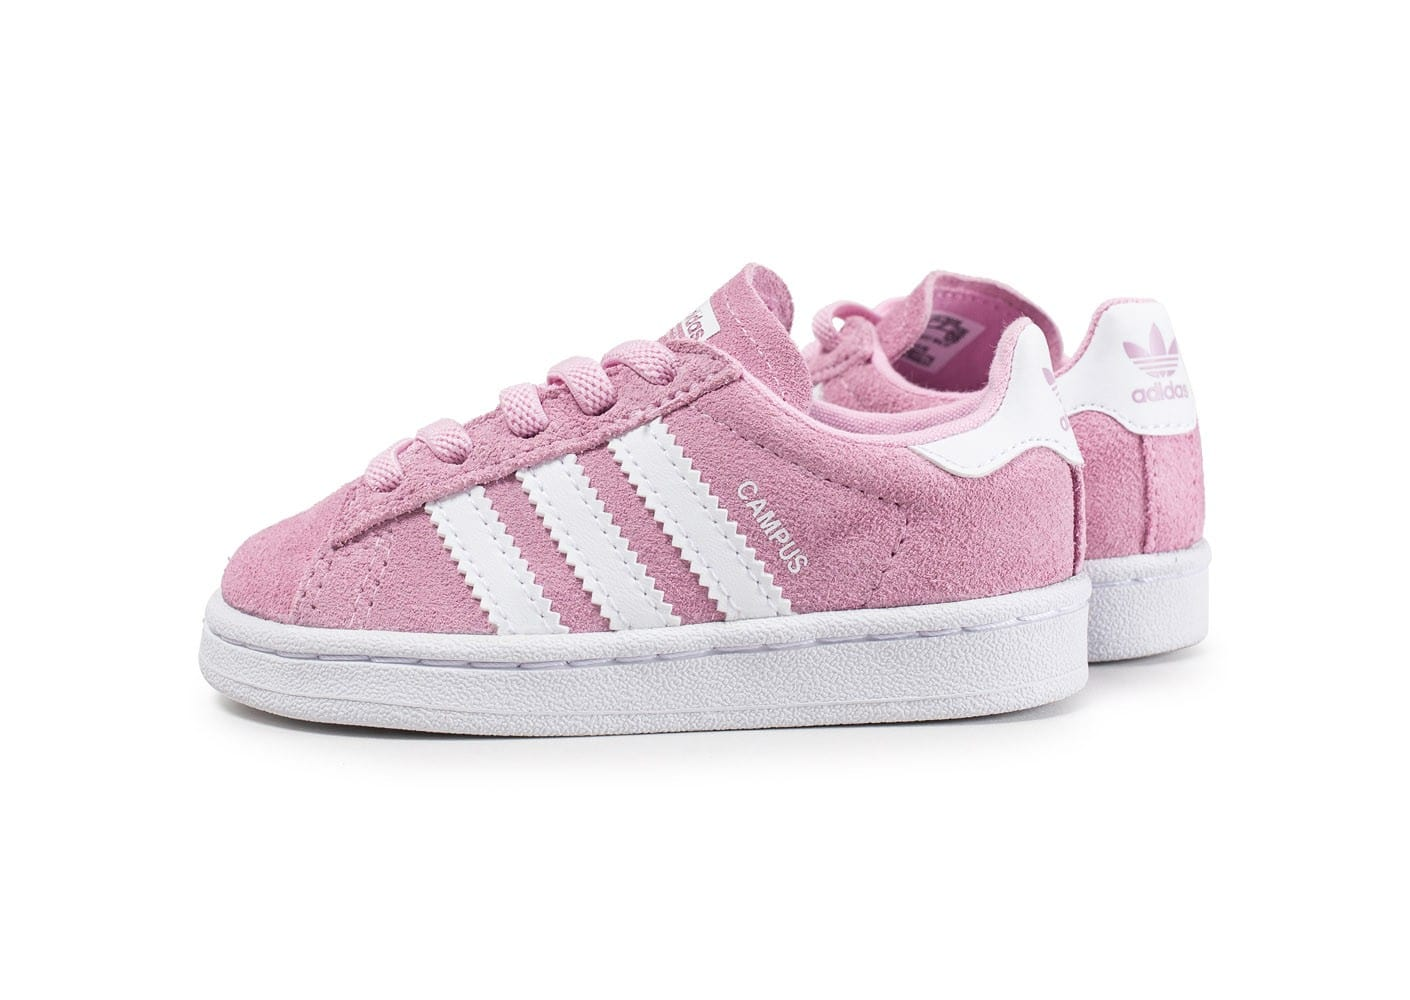 adidas campus b b rose chaussures adidas chausport. Black Bedroom Furniture Sets. Home Design Ideas